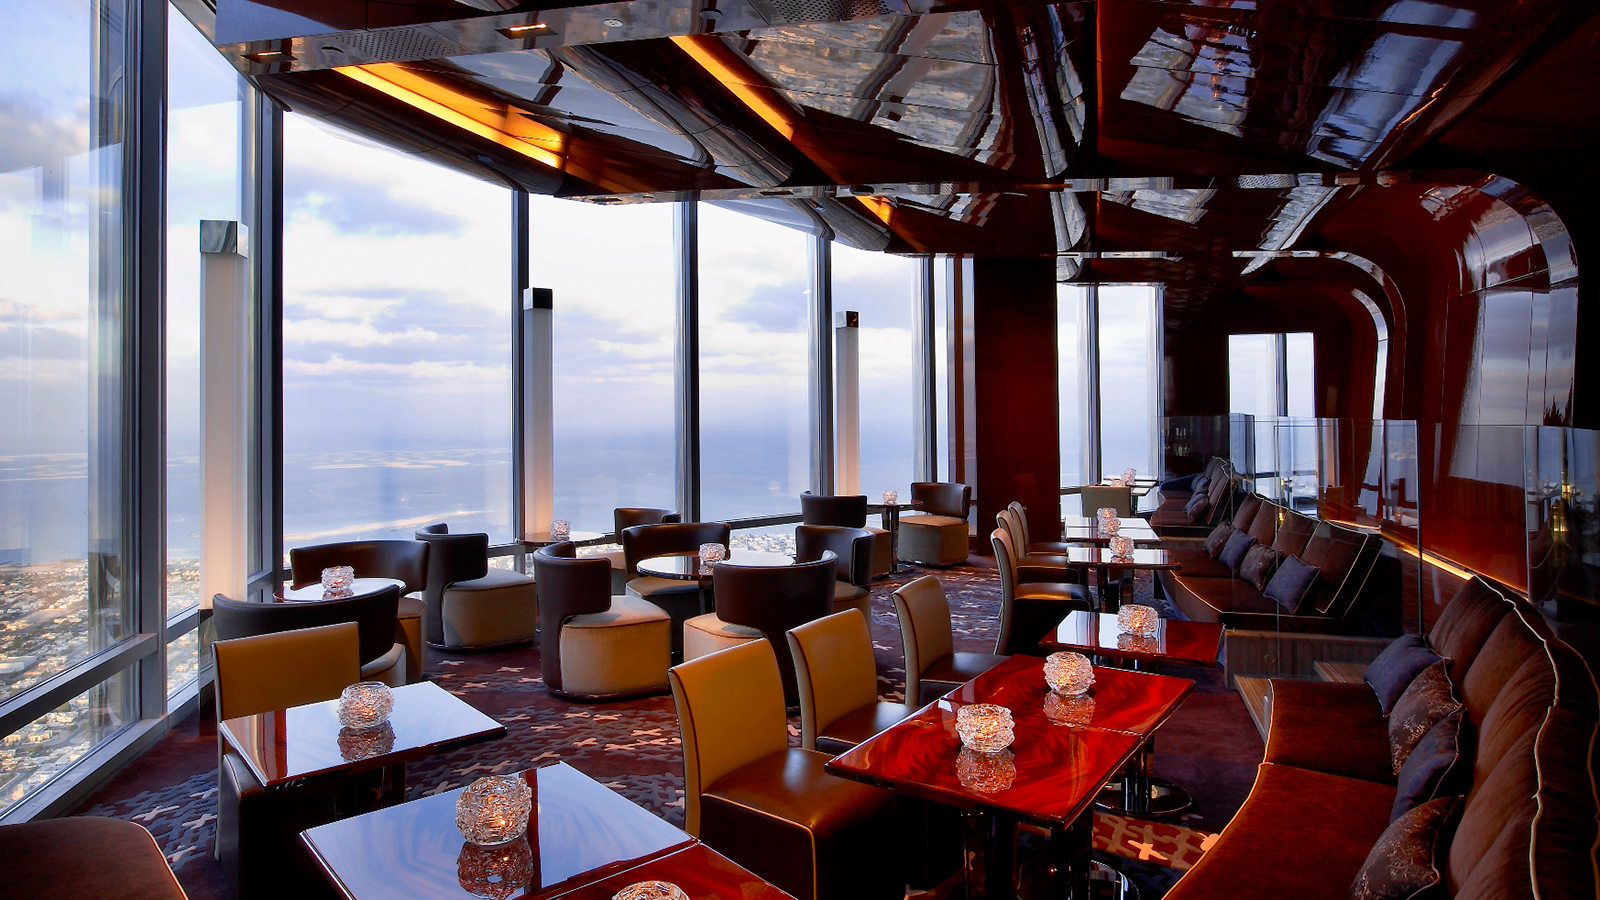 Dubais 9 most luxurious restaurants cnn travel